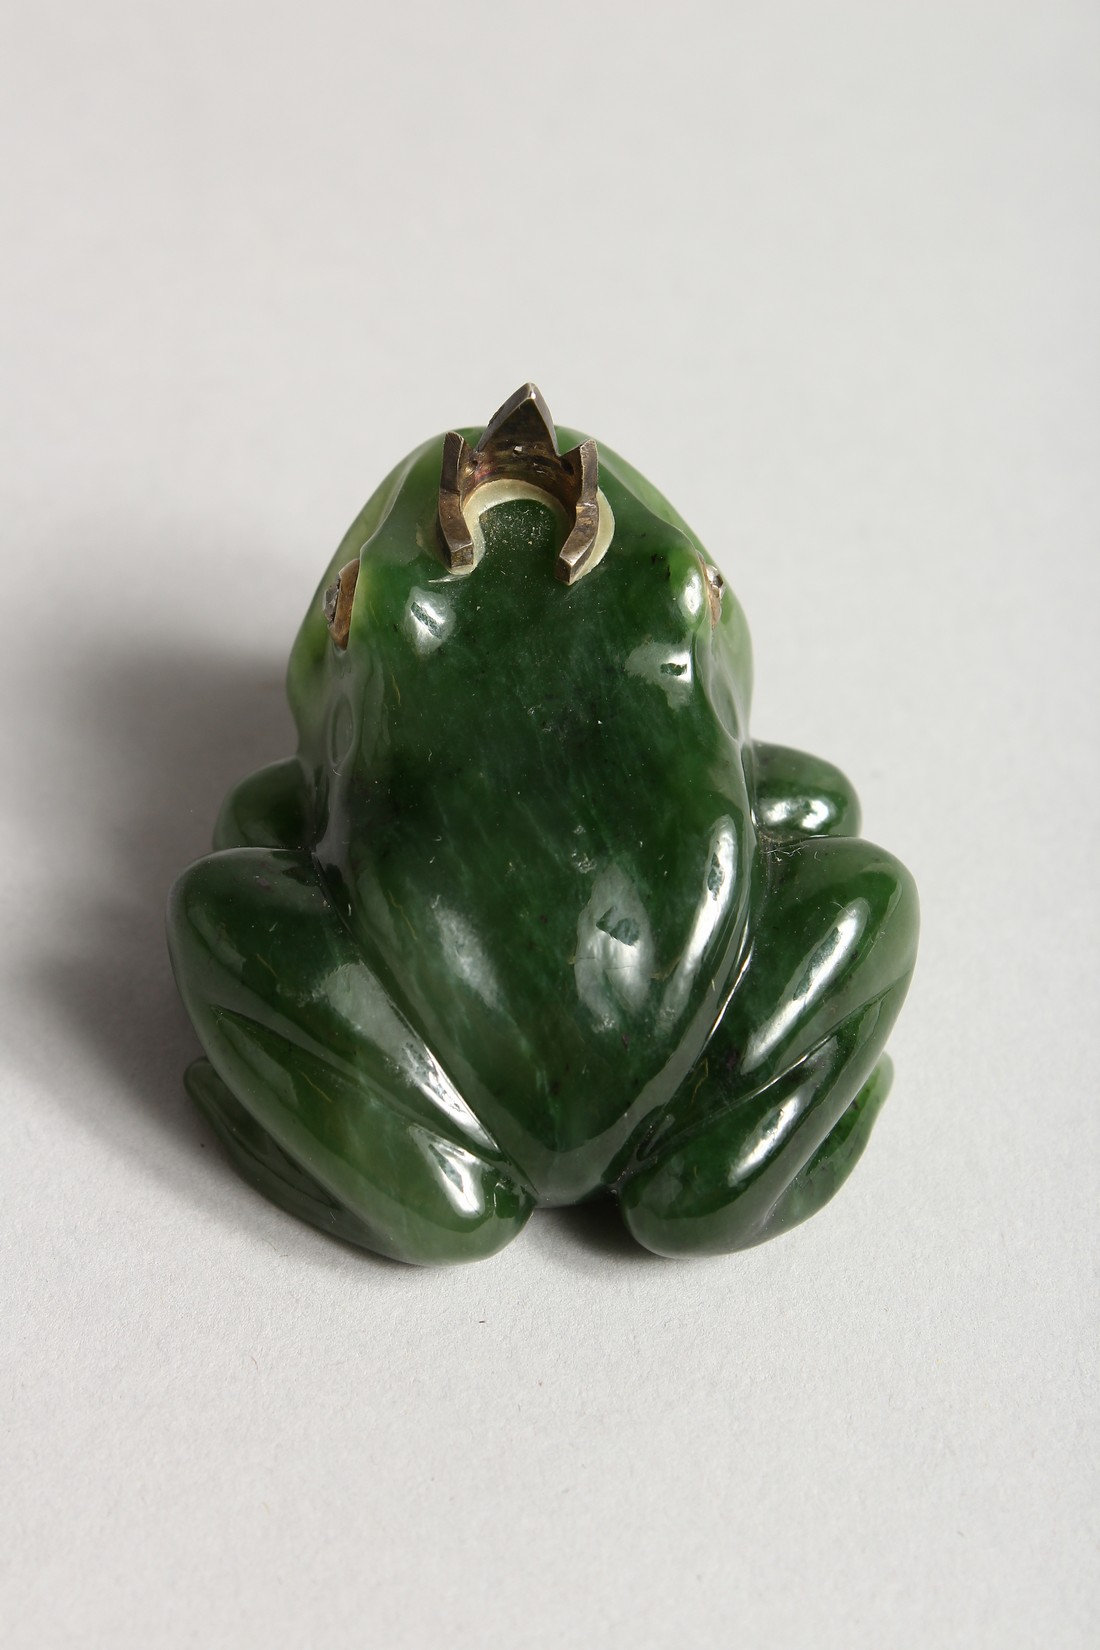 A SUPERB RUSSIAN JADE AND DIAMOND MOUNTED FROG 2ins long - Image 4 of 6